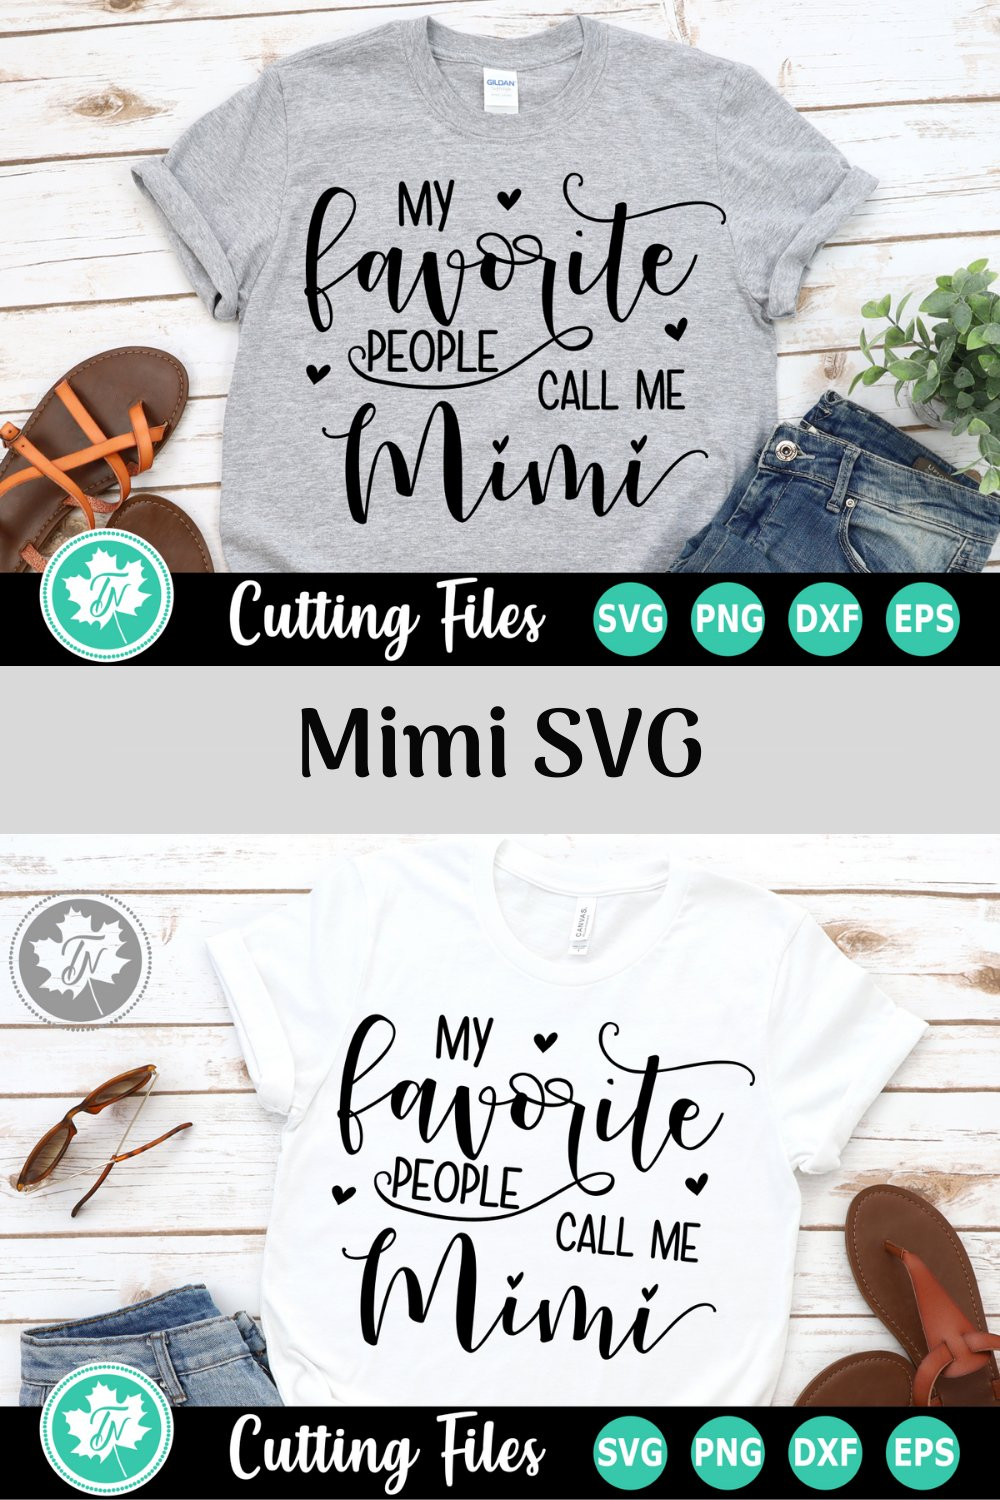 26+ Mimi Svg * My Favorite People Call Me Mimi * My Favorite Person Calls Me Mimi Cut File SVG